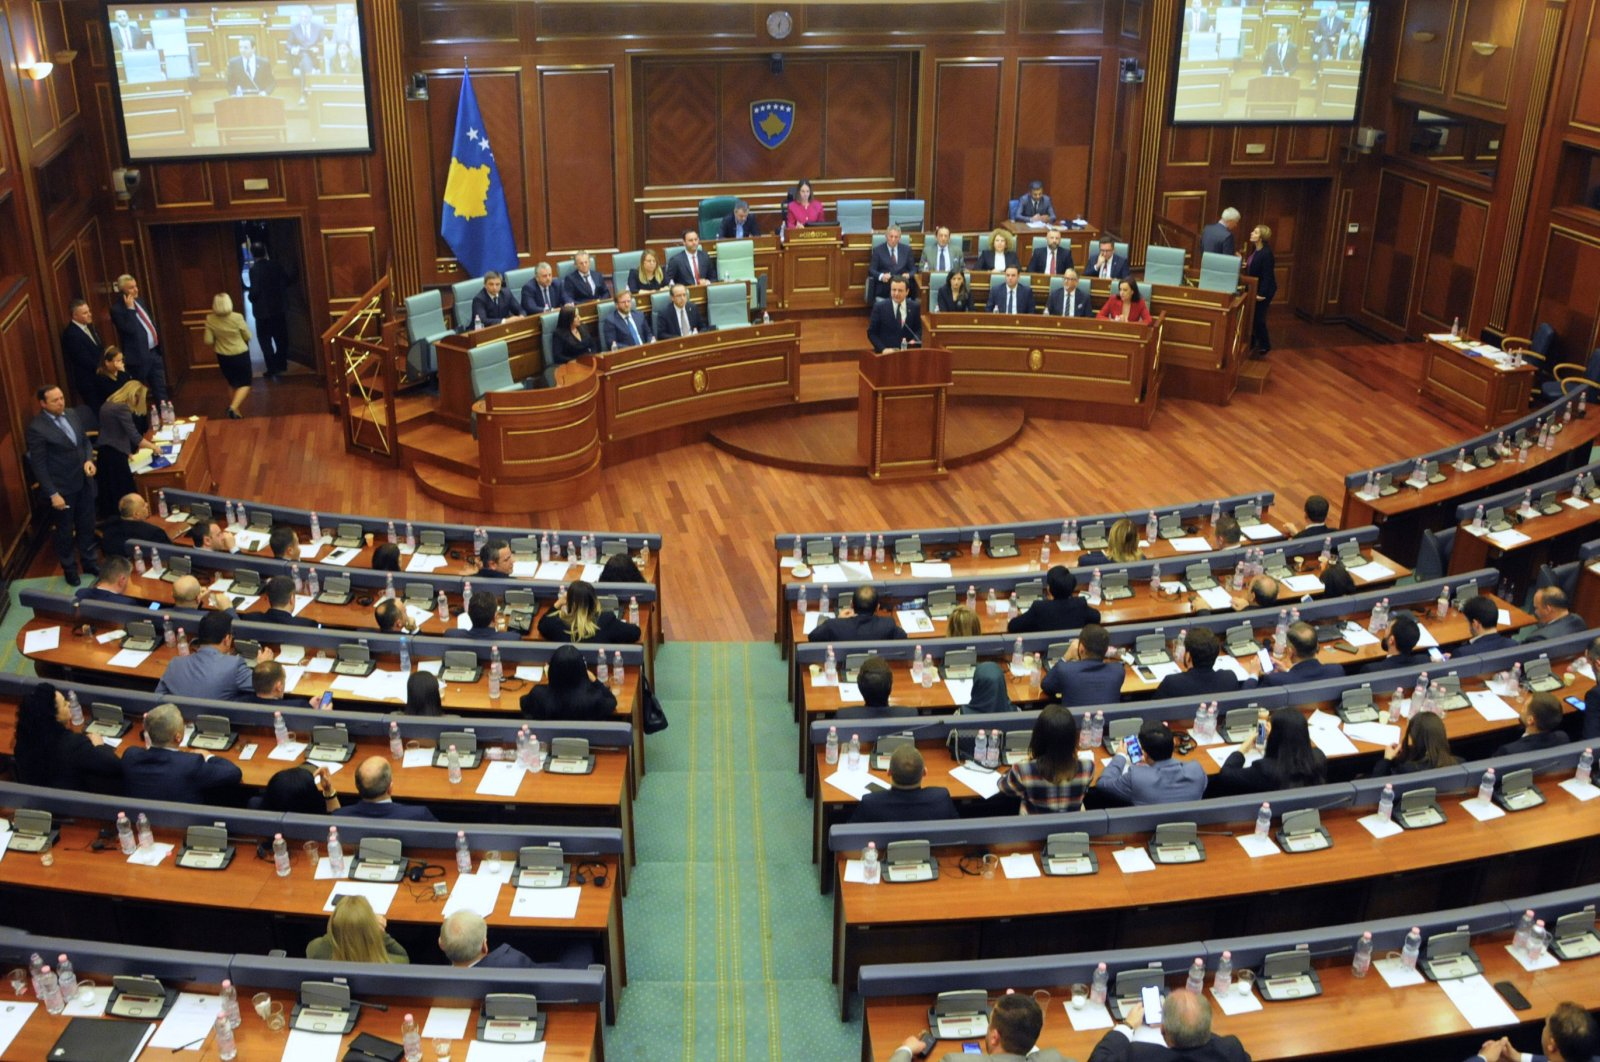 Newly elected Prime Minister of Kosovo Albin Kurti delivers his speech during a parliament session in Pristina, Kosovo, Feb. 3, 2020. (Reuters Photo)